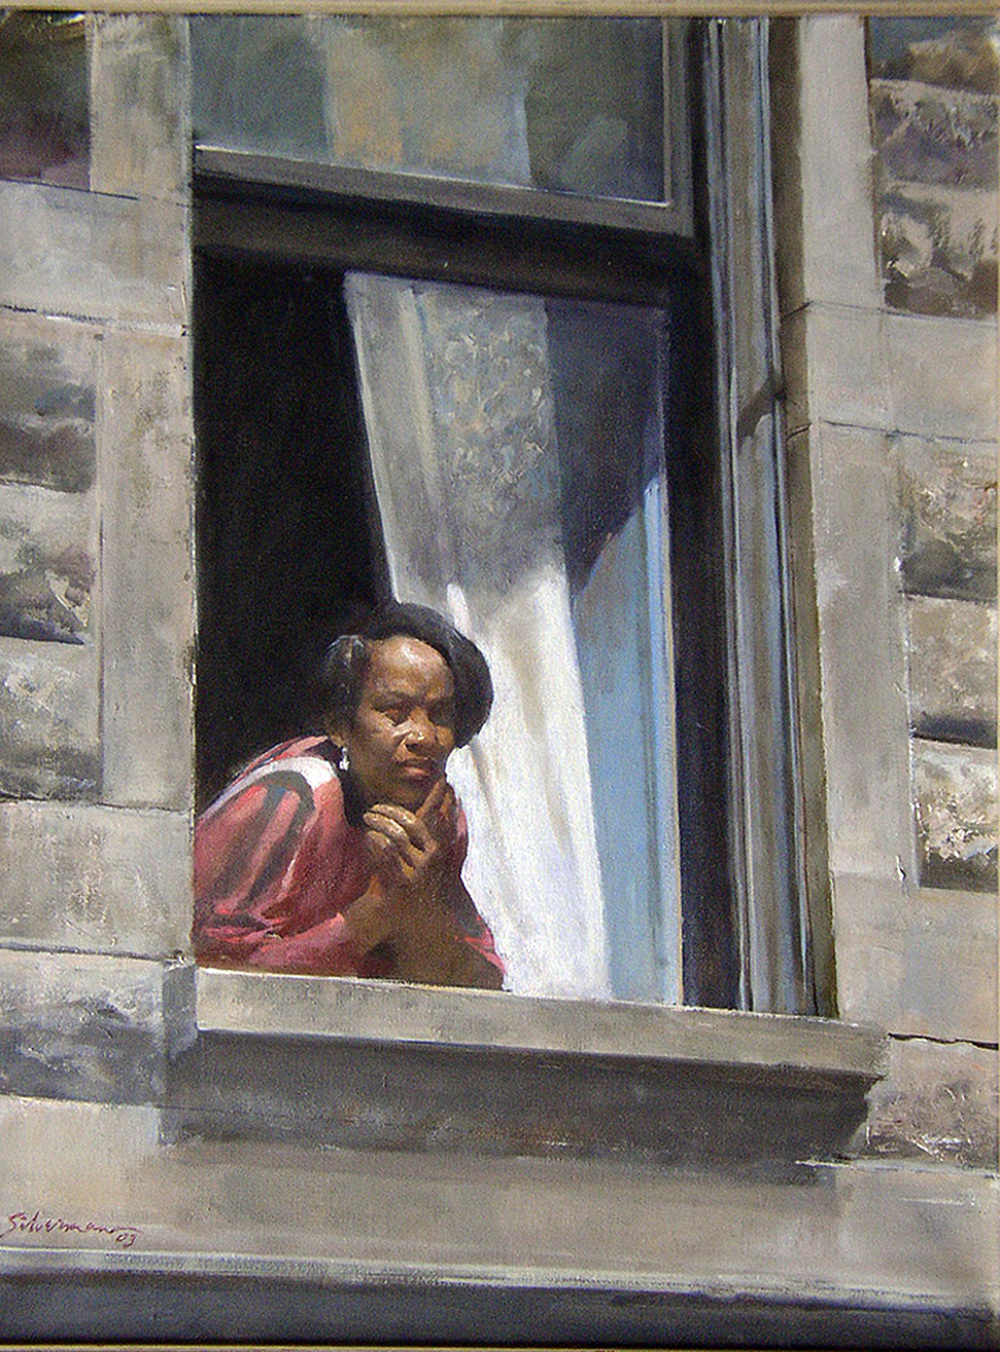 Silverman Harlem window 2003 30x24.jpg